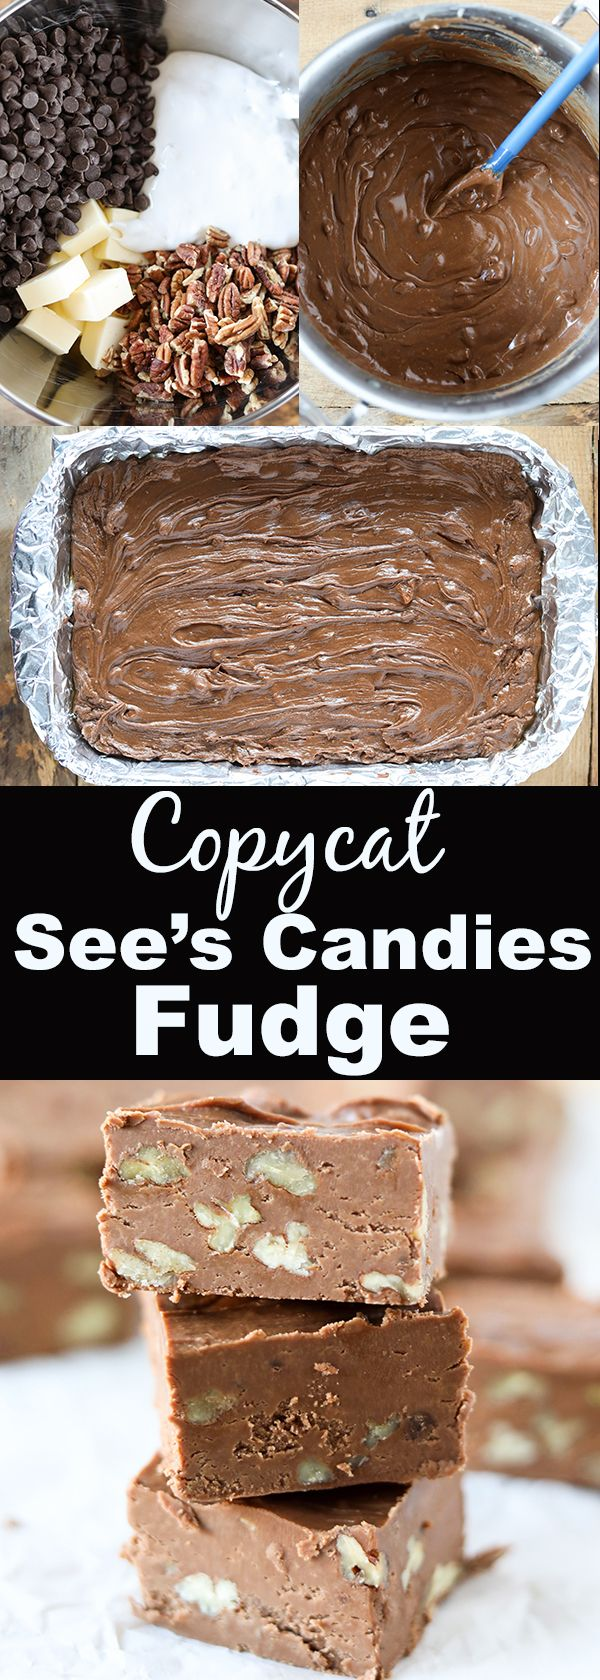 This Copycat See's Fudge is so delicious and extremely easy to make. See's Candies is definitely a Christmas favorite around our house and everyone loves their fudge!  This recipe makes an entire 9×13 pan of delicious fudge, so it's perfect for gift giving. Last week, I posted my Grandma Wanda's Peanut Brittle recipe and it …